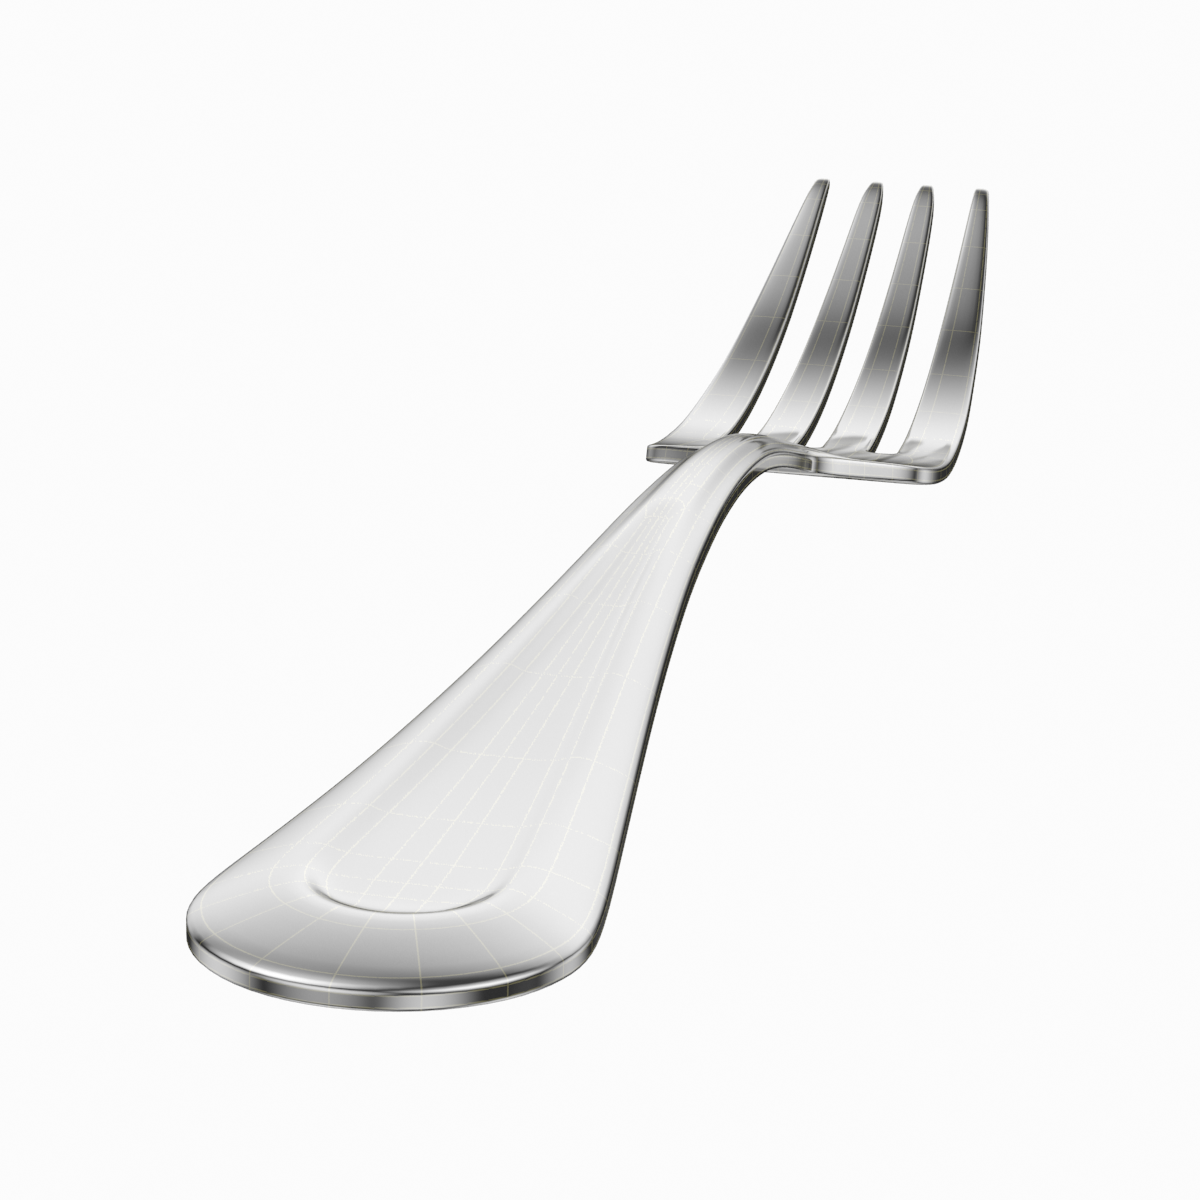 table dinner knife and fork classic cutlery 3d model 3ds max fbx c4d ma mb obj 284050